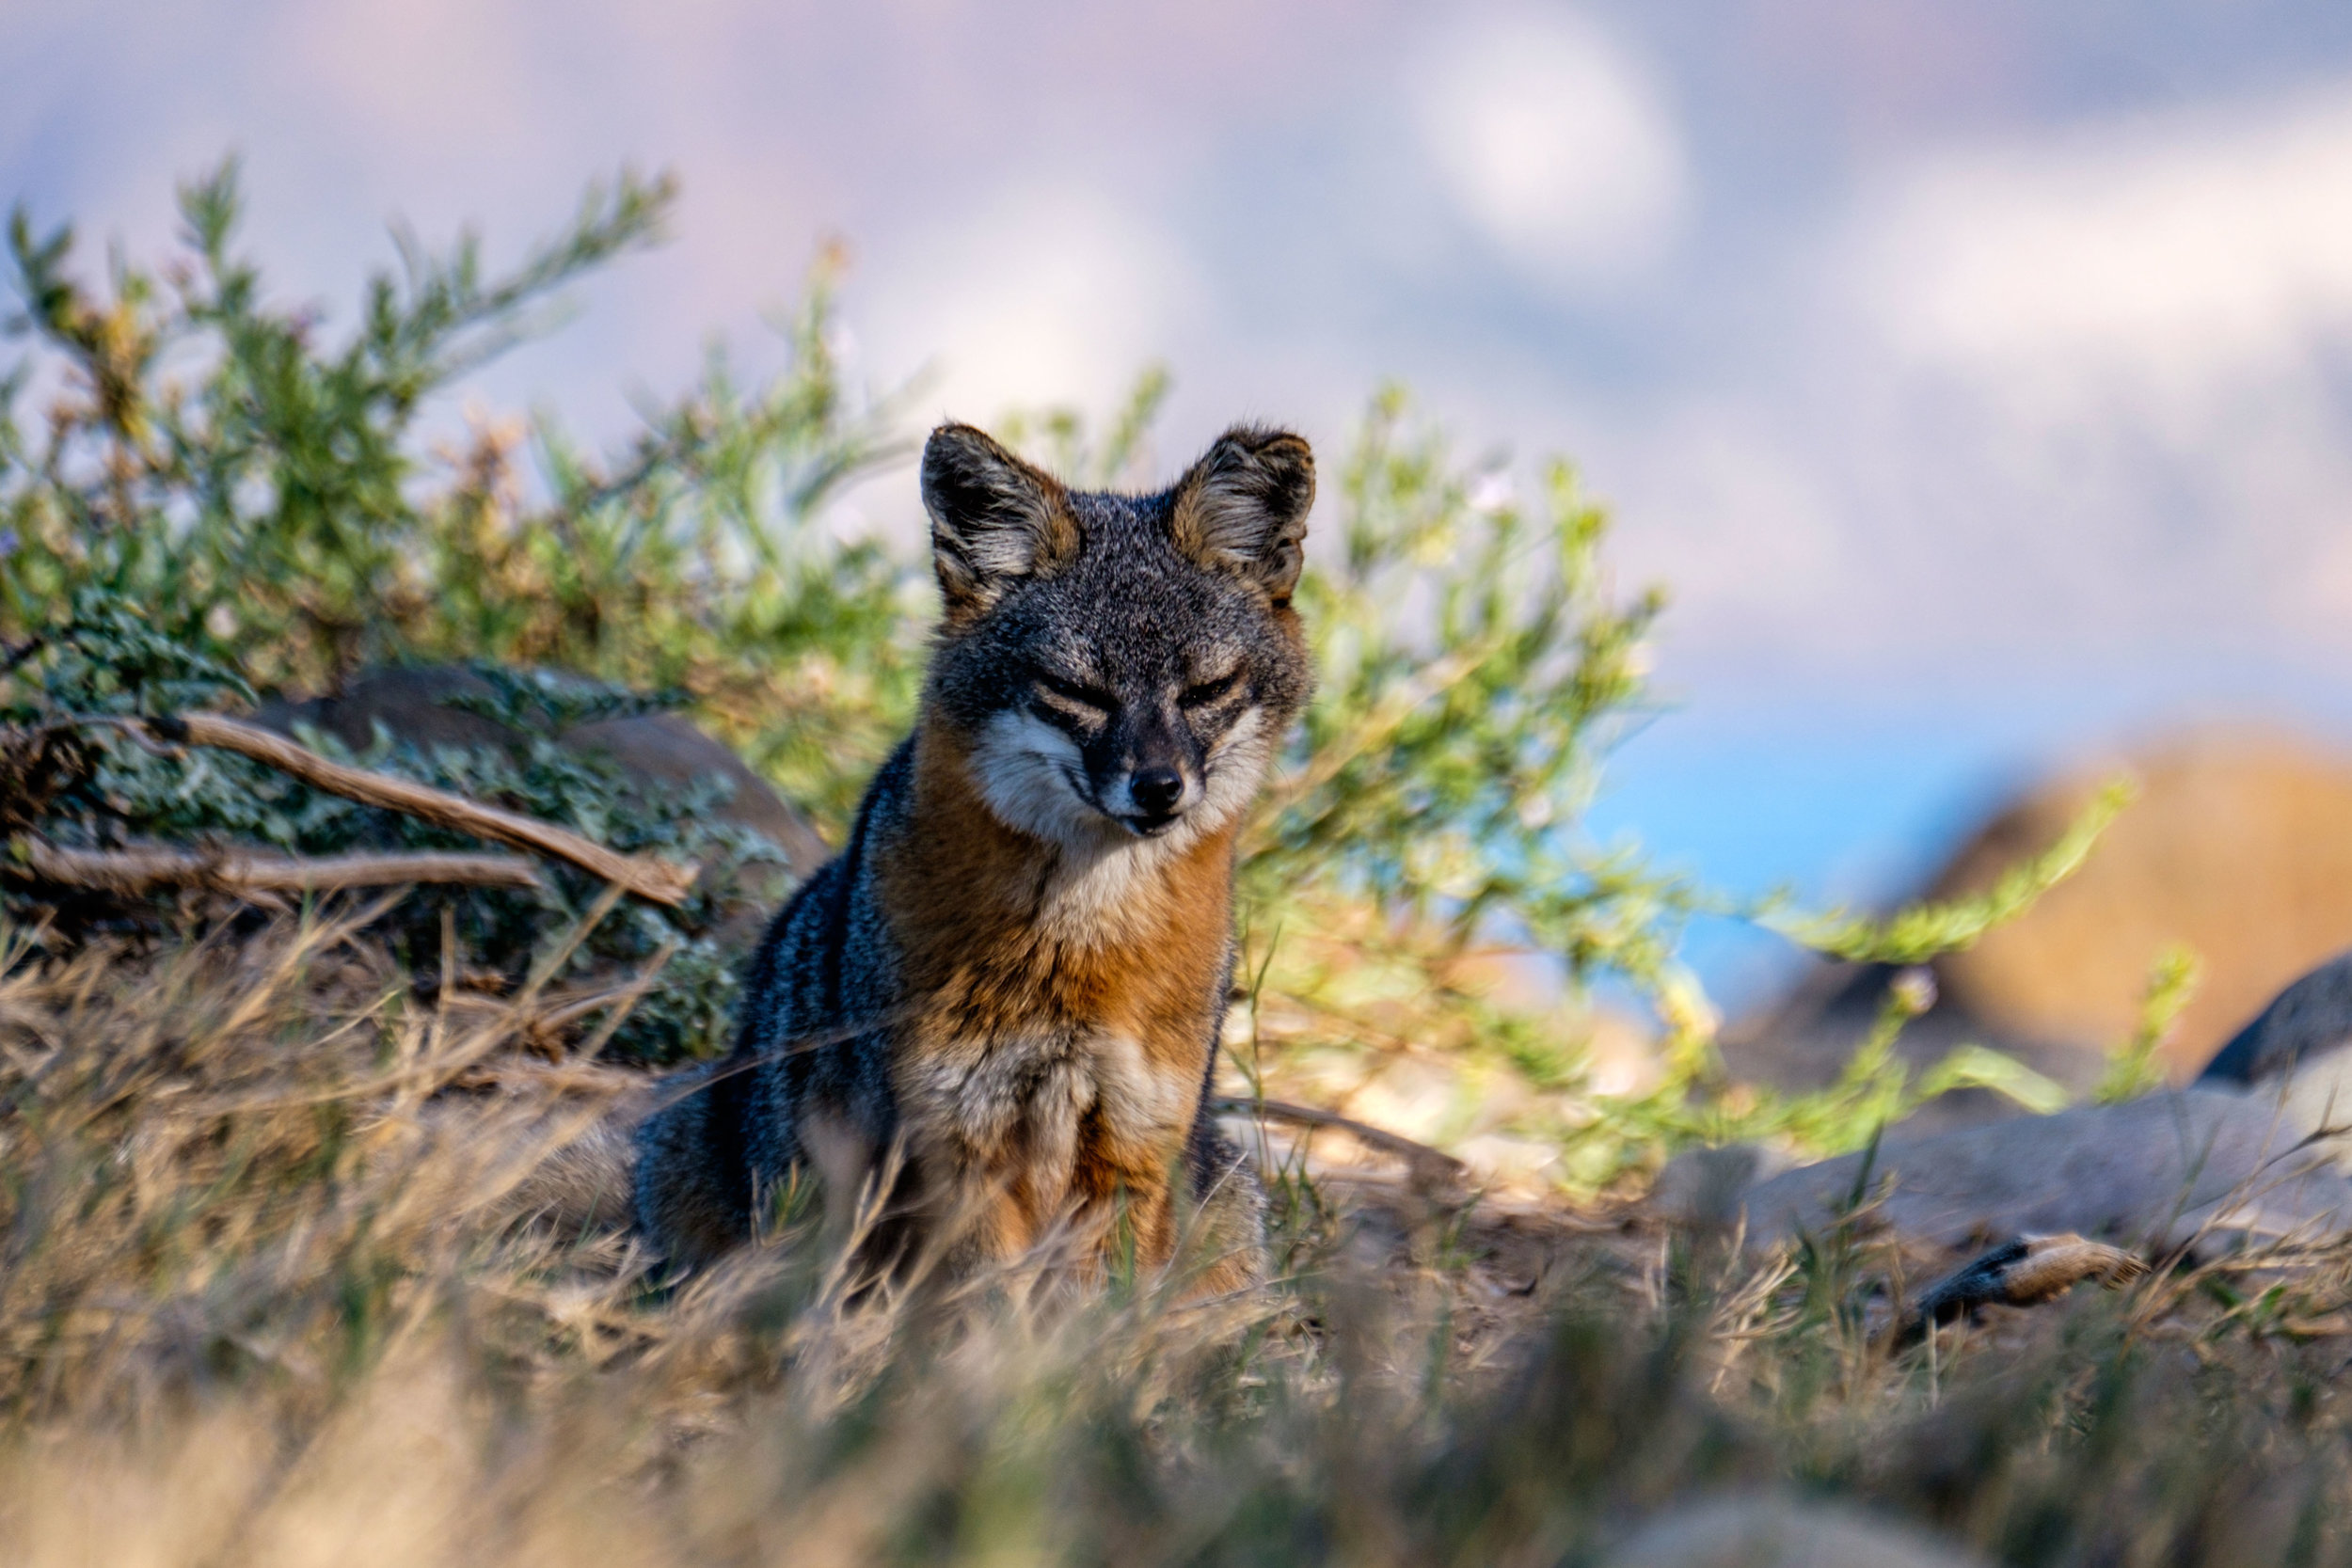 This was the first time we spotted the Santa Cruz Island foxes (Urocyon littoralis), which are found only on this island in the national park.